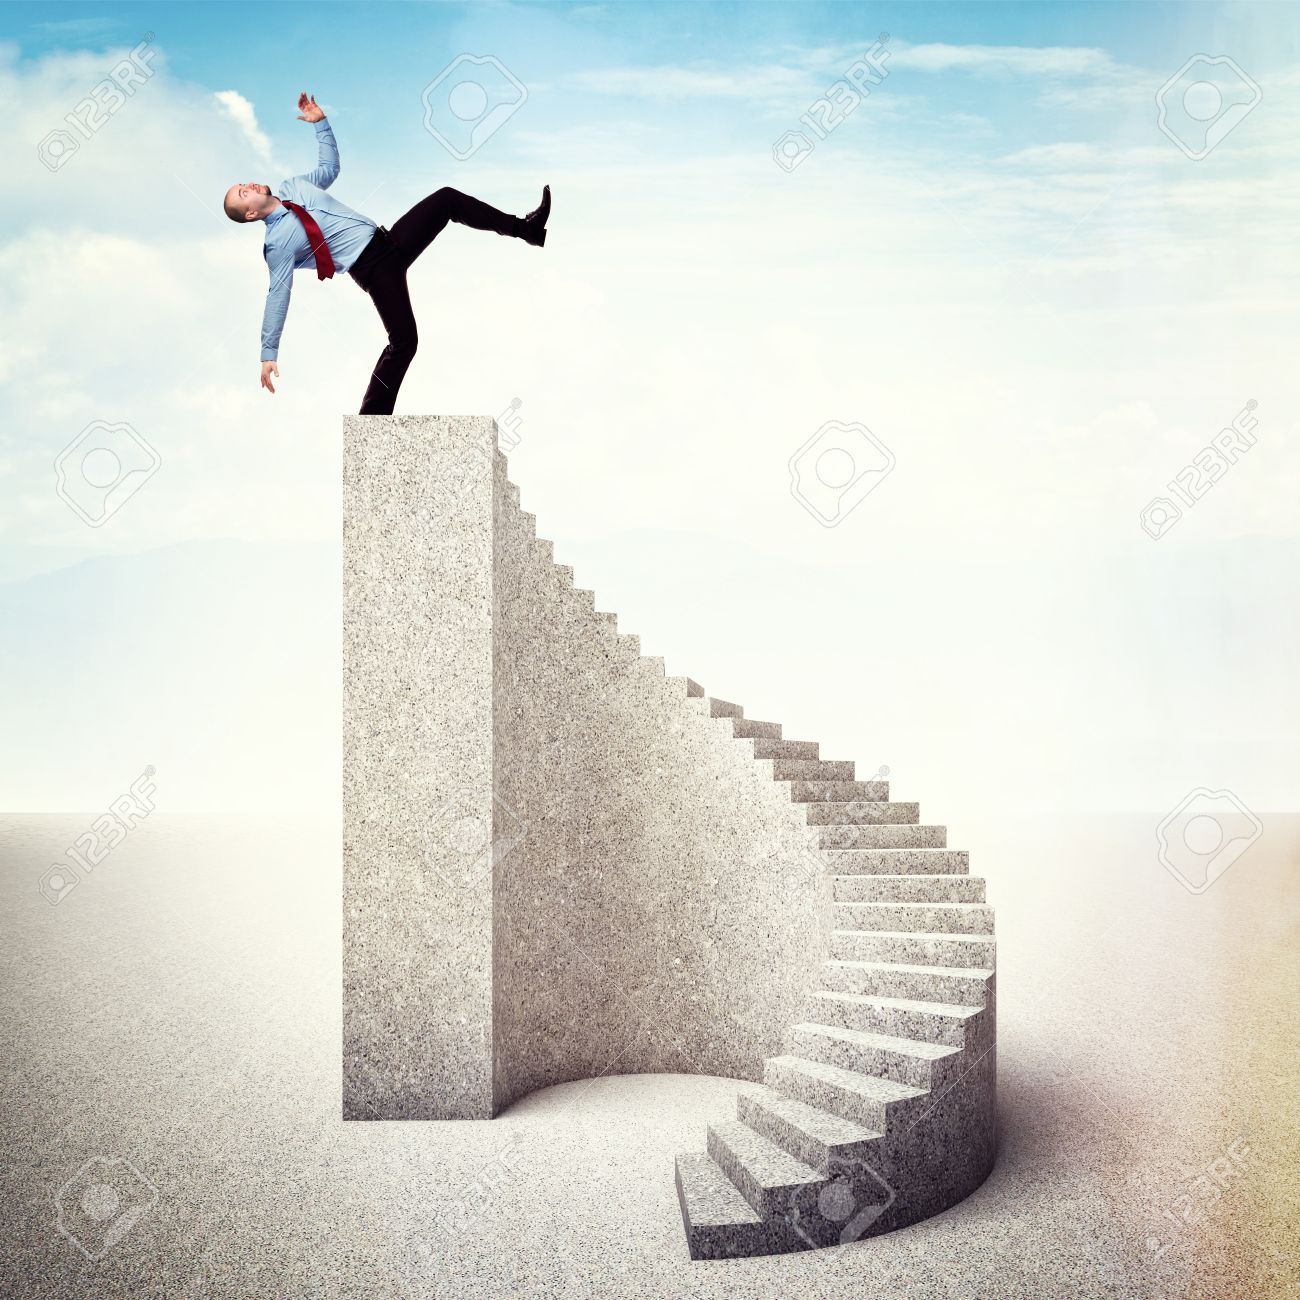 Man On Stair Near To Fall Down Stock Photo Picture And Royalty Free Image Image 17541996